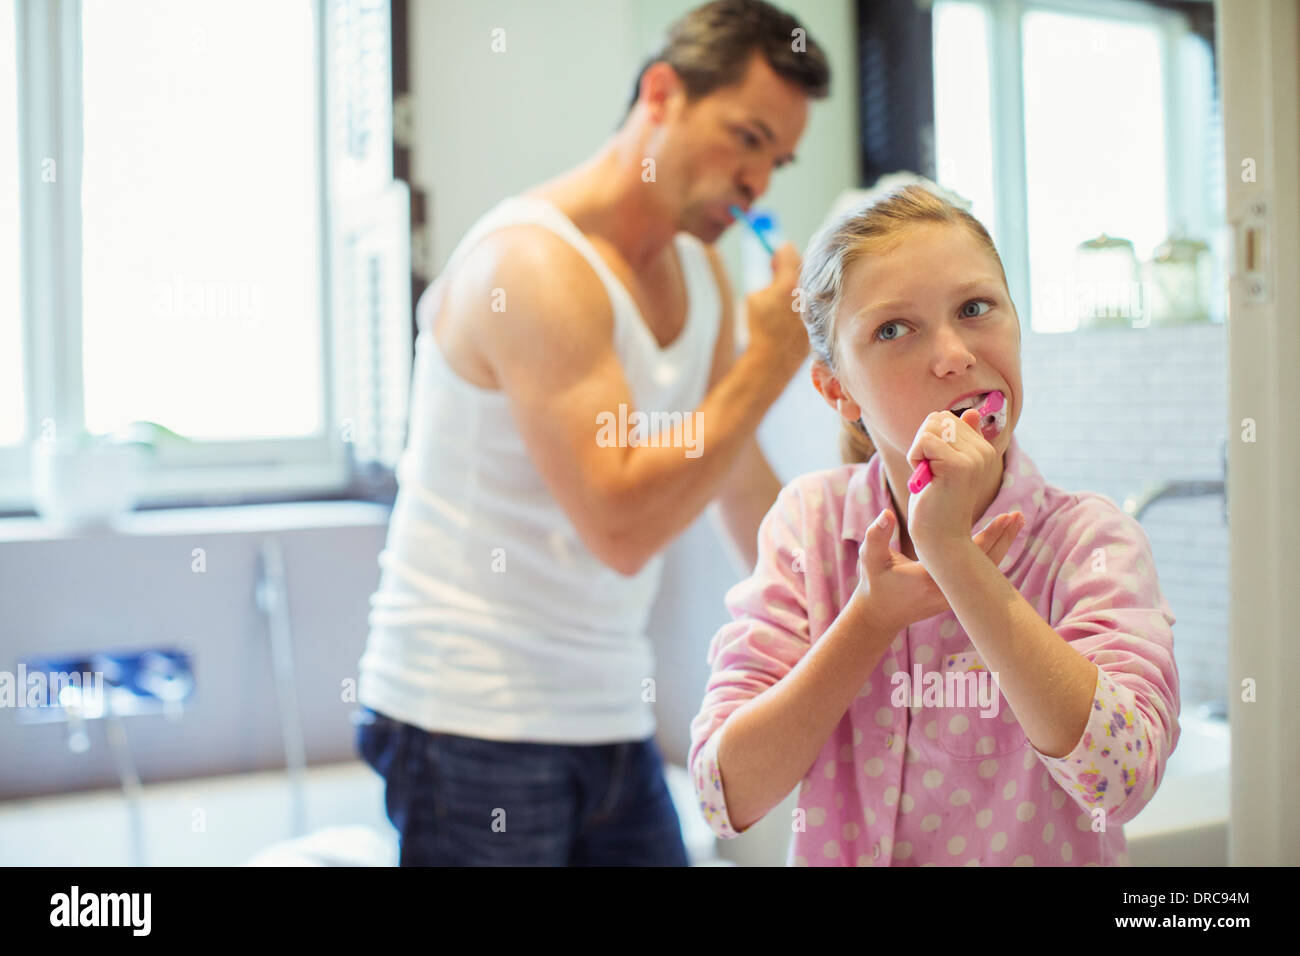 Father and daughter brushing teeth in bathroom - Stock Image